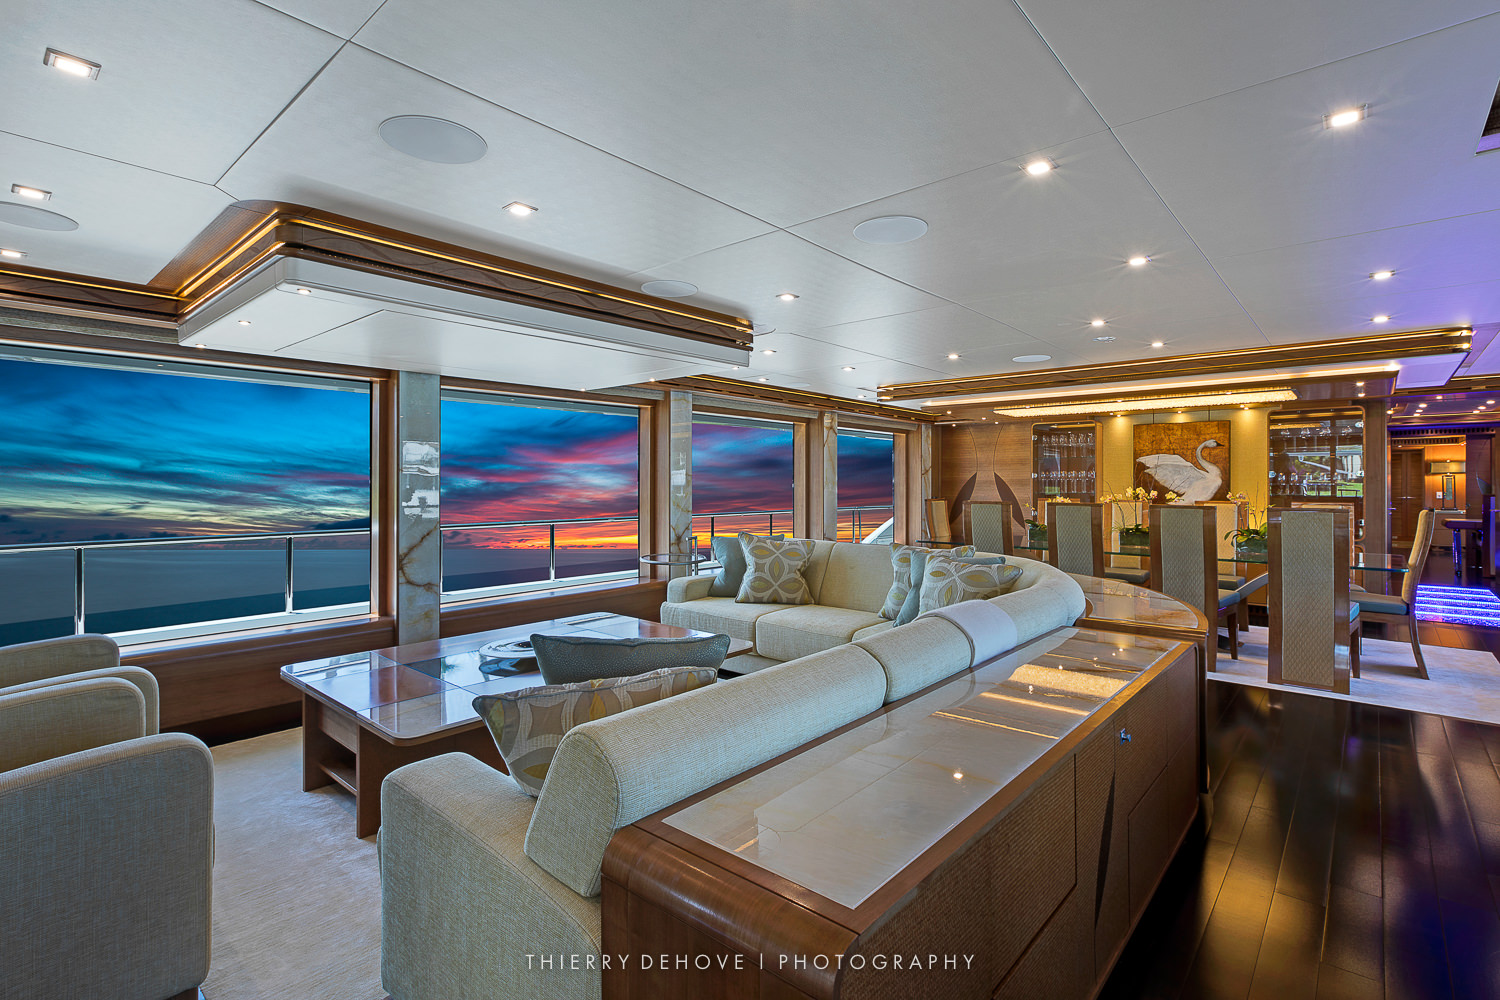 Inside Luxury Yachts Serenity Luxury Yacht 133 Interior Welcome To Thierry